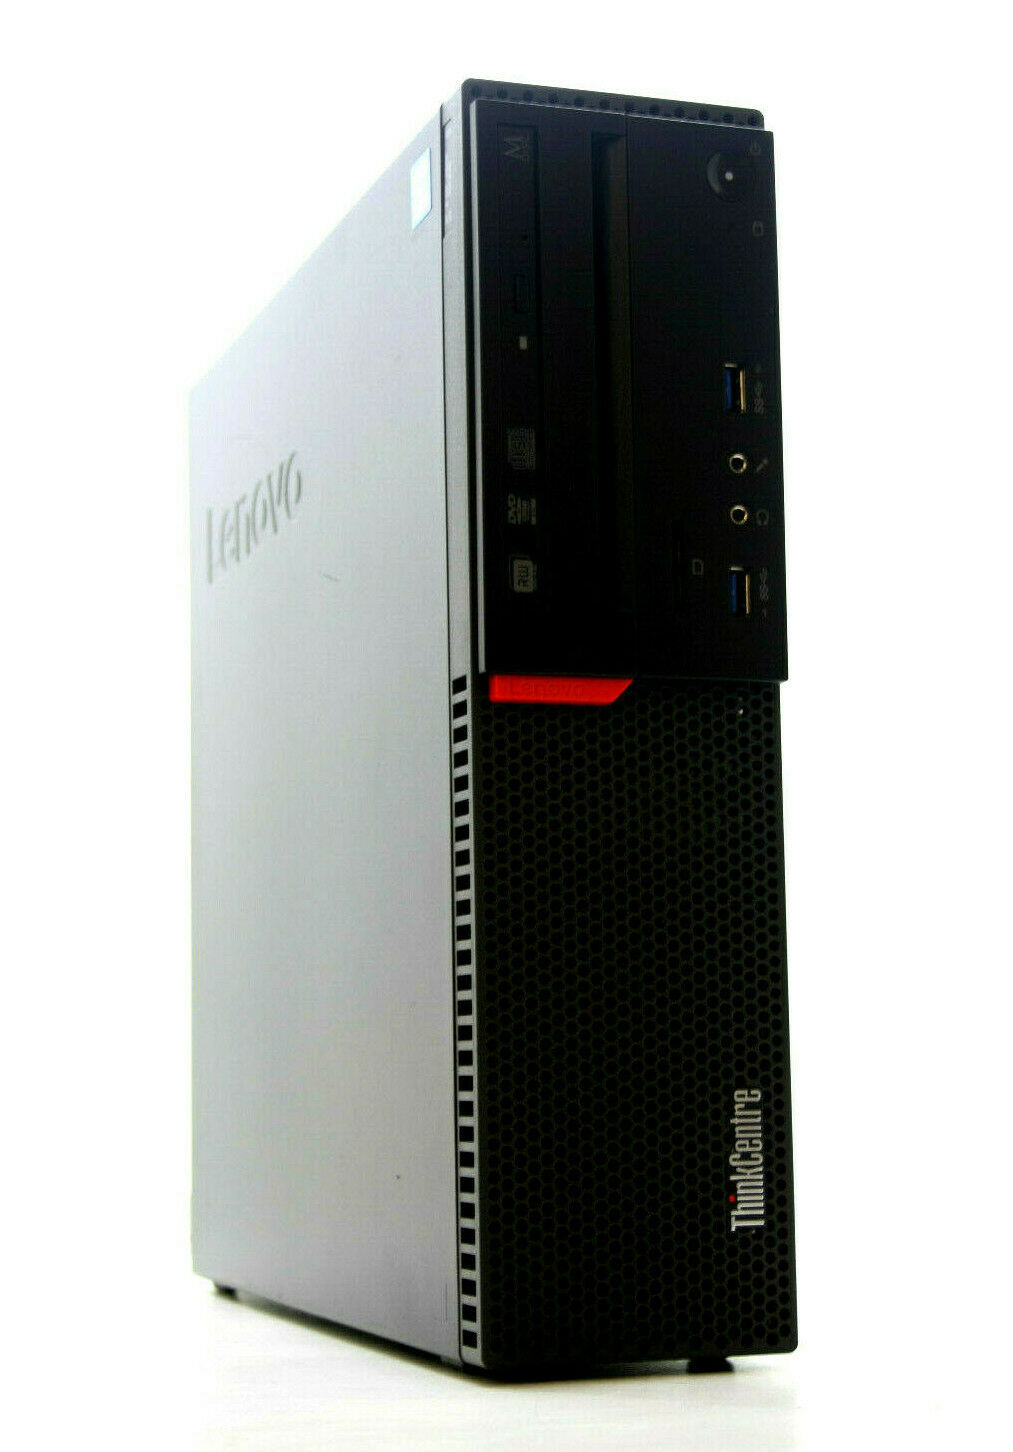 Lenovo-Thinkcentre-M700